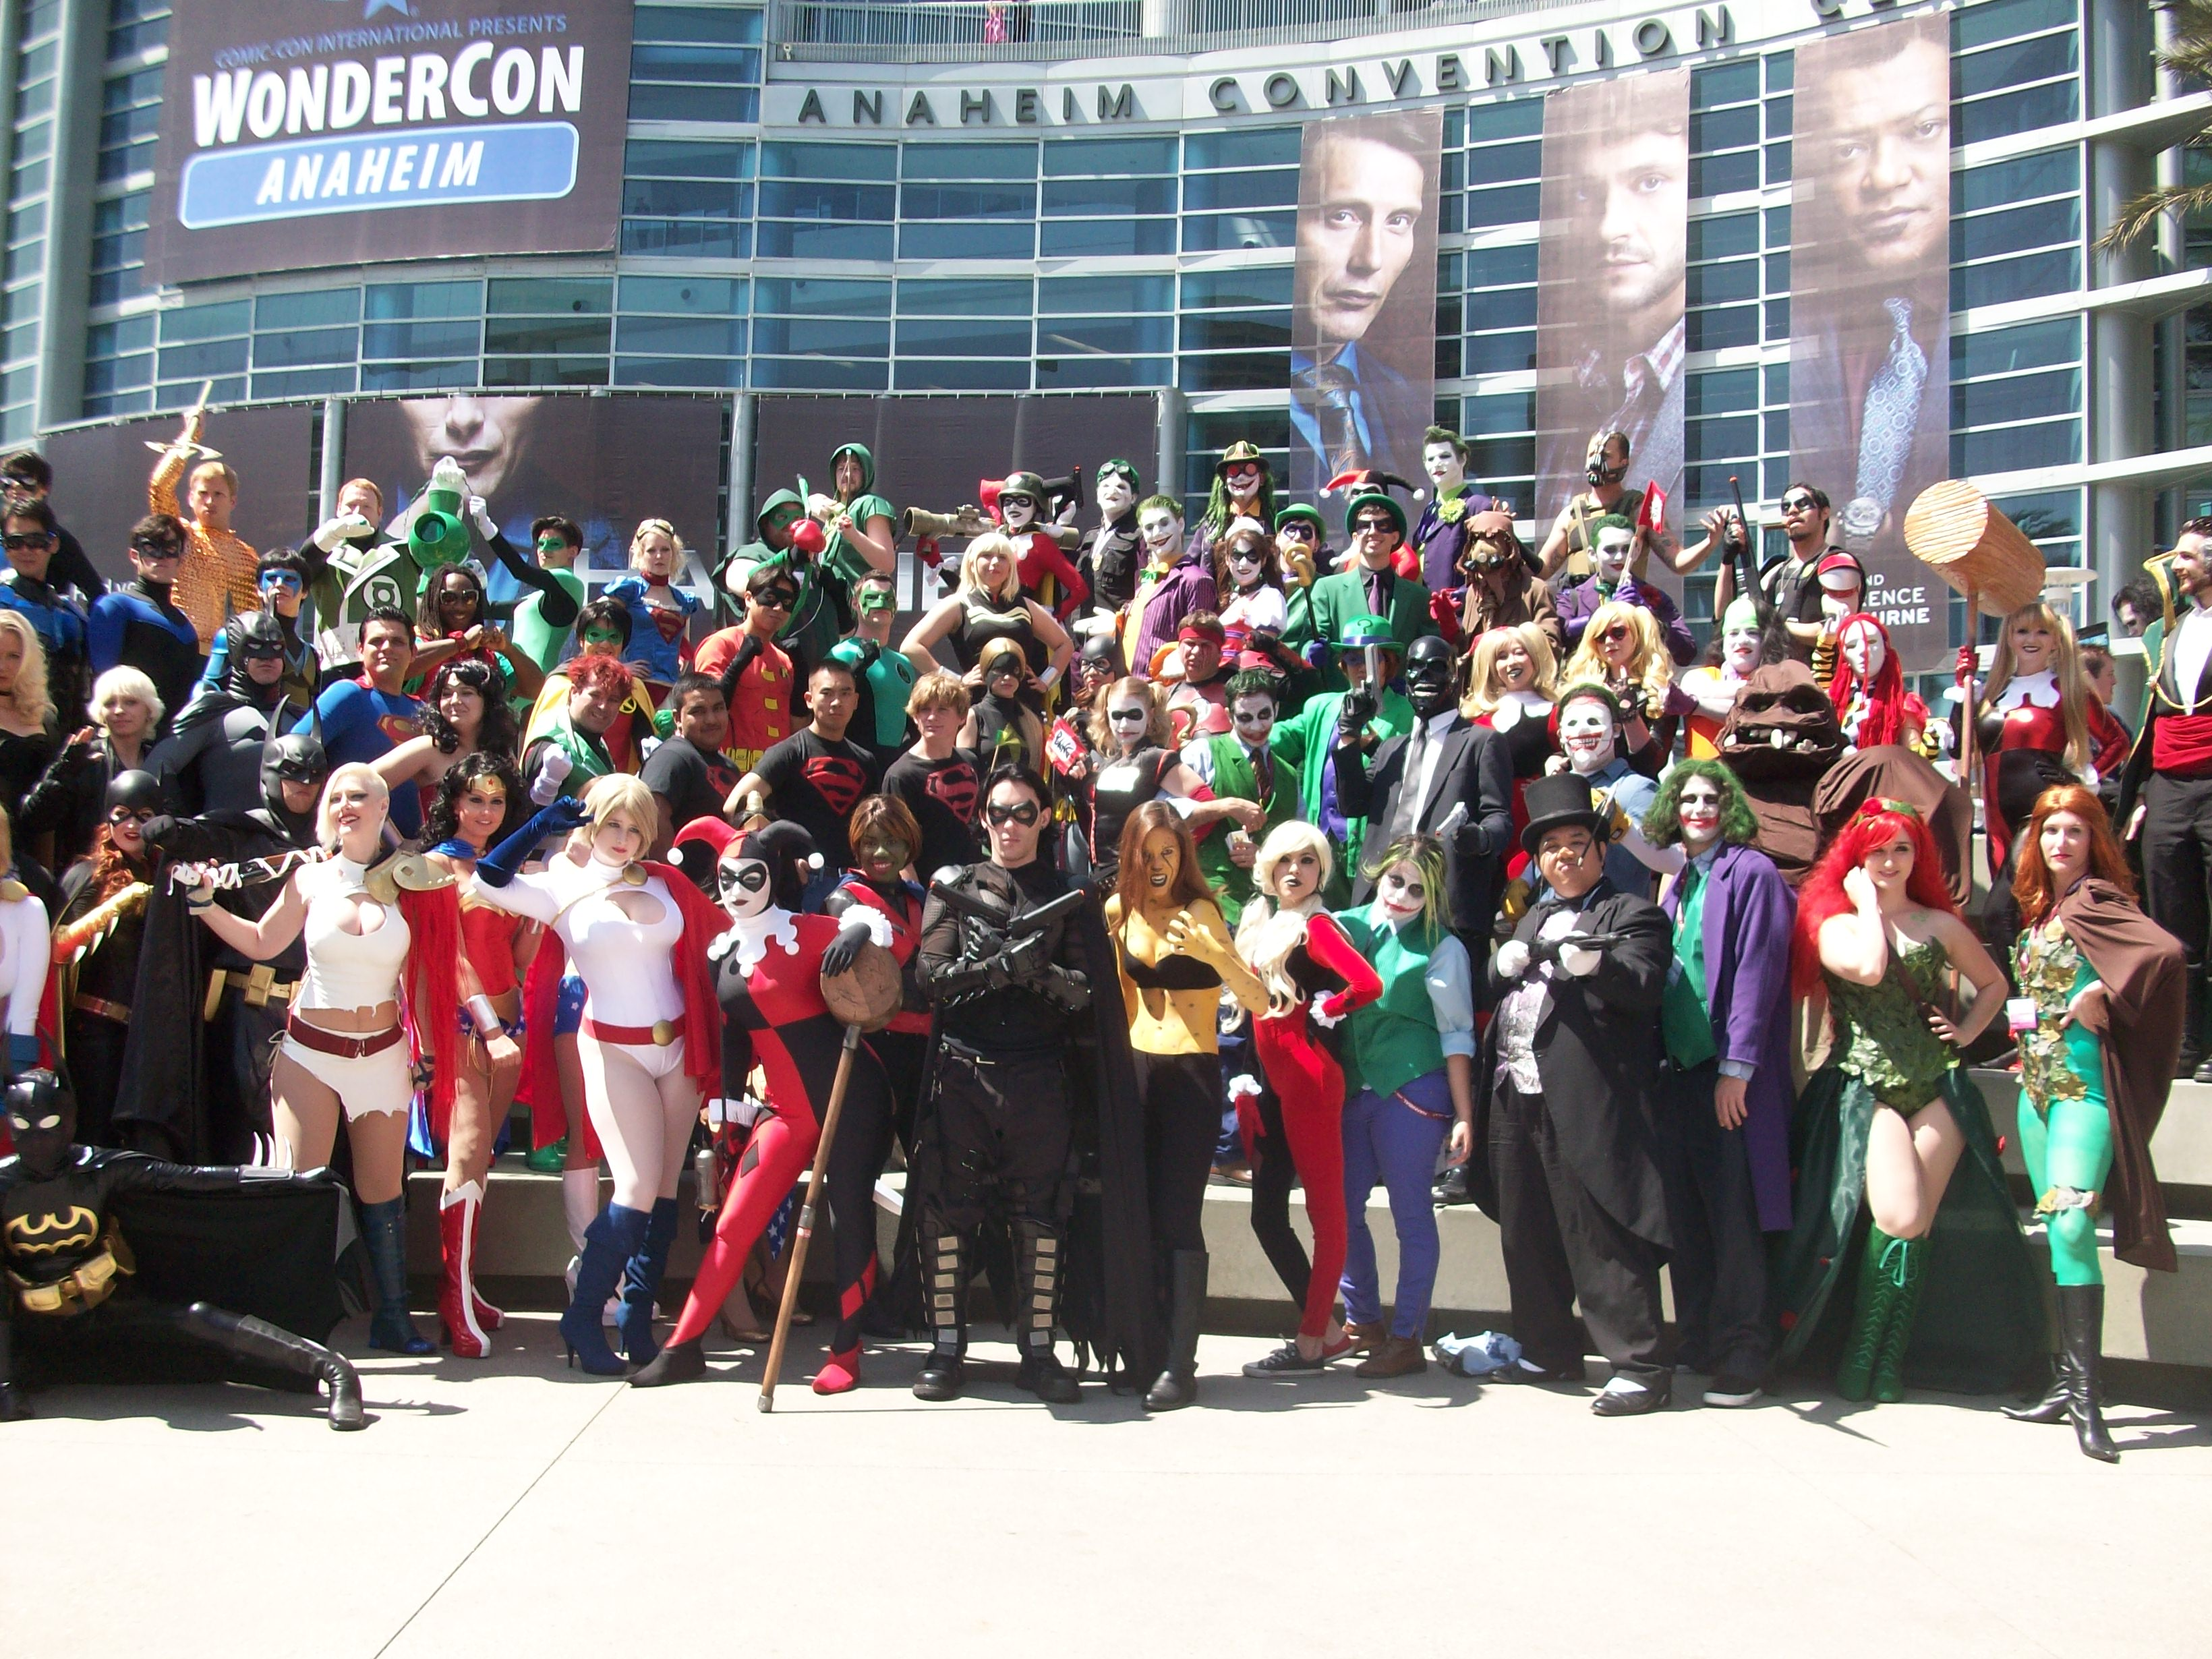 Welcome back for more photos from WonderCon Anaheim 2013. If you're wondering about the giant photo above, I was able...